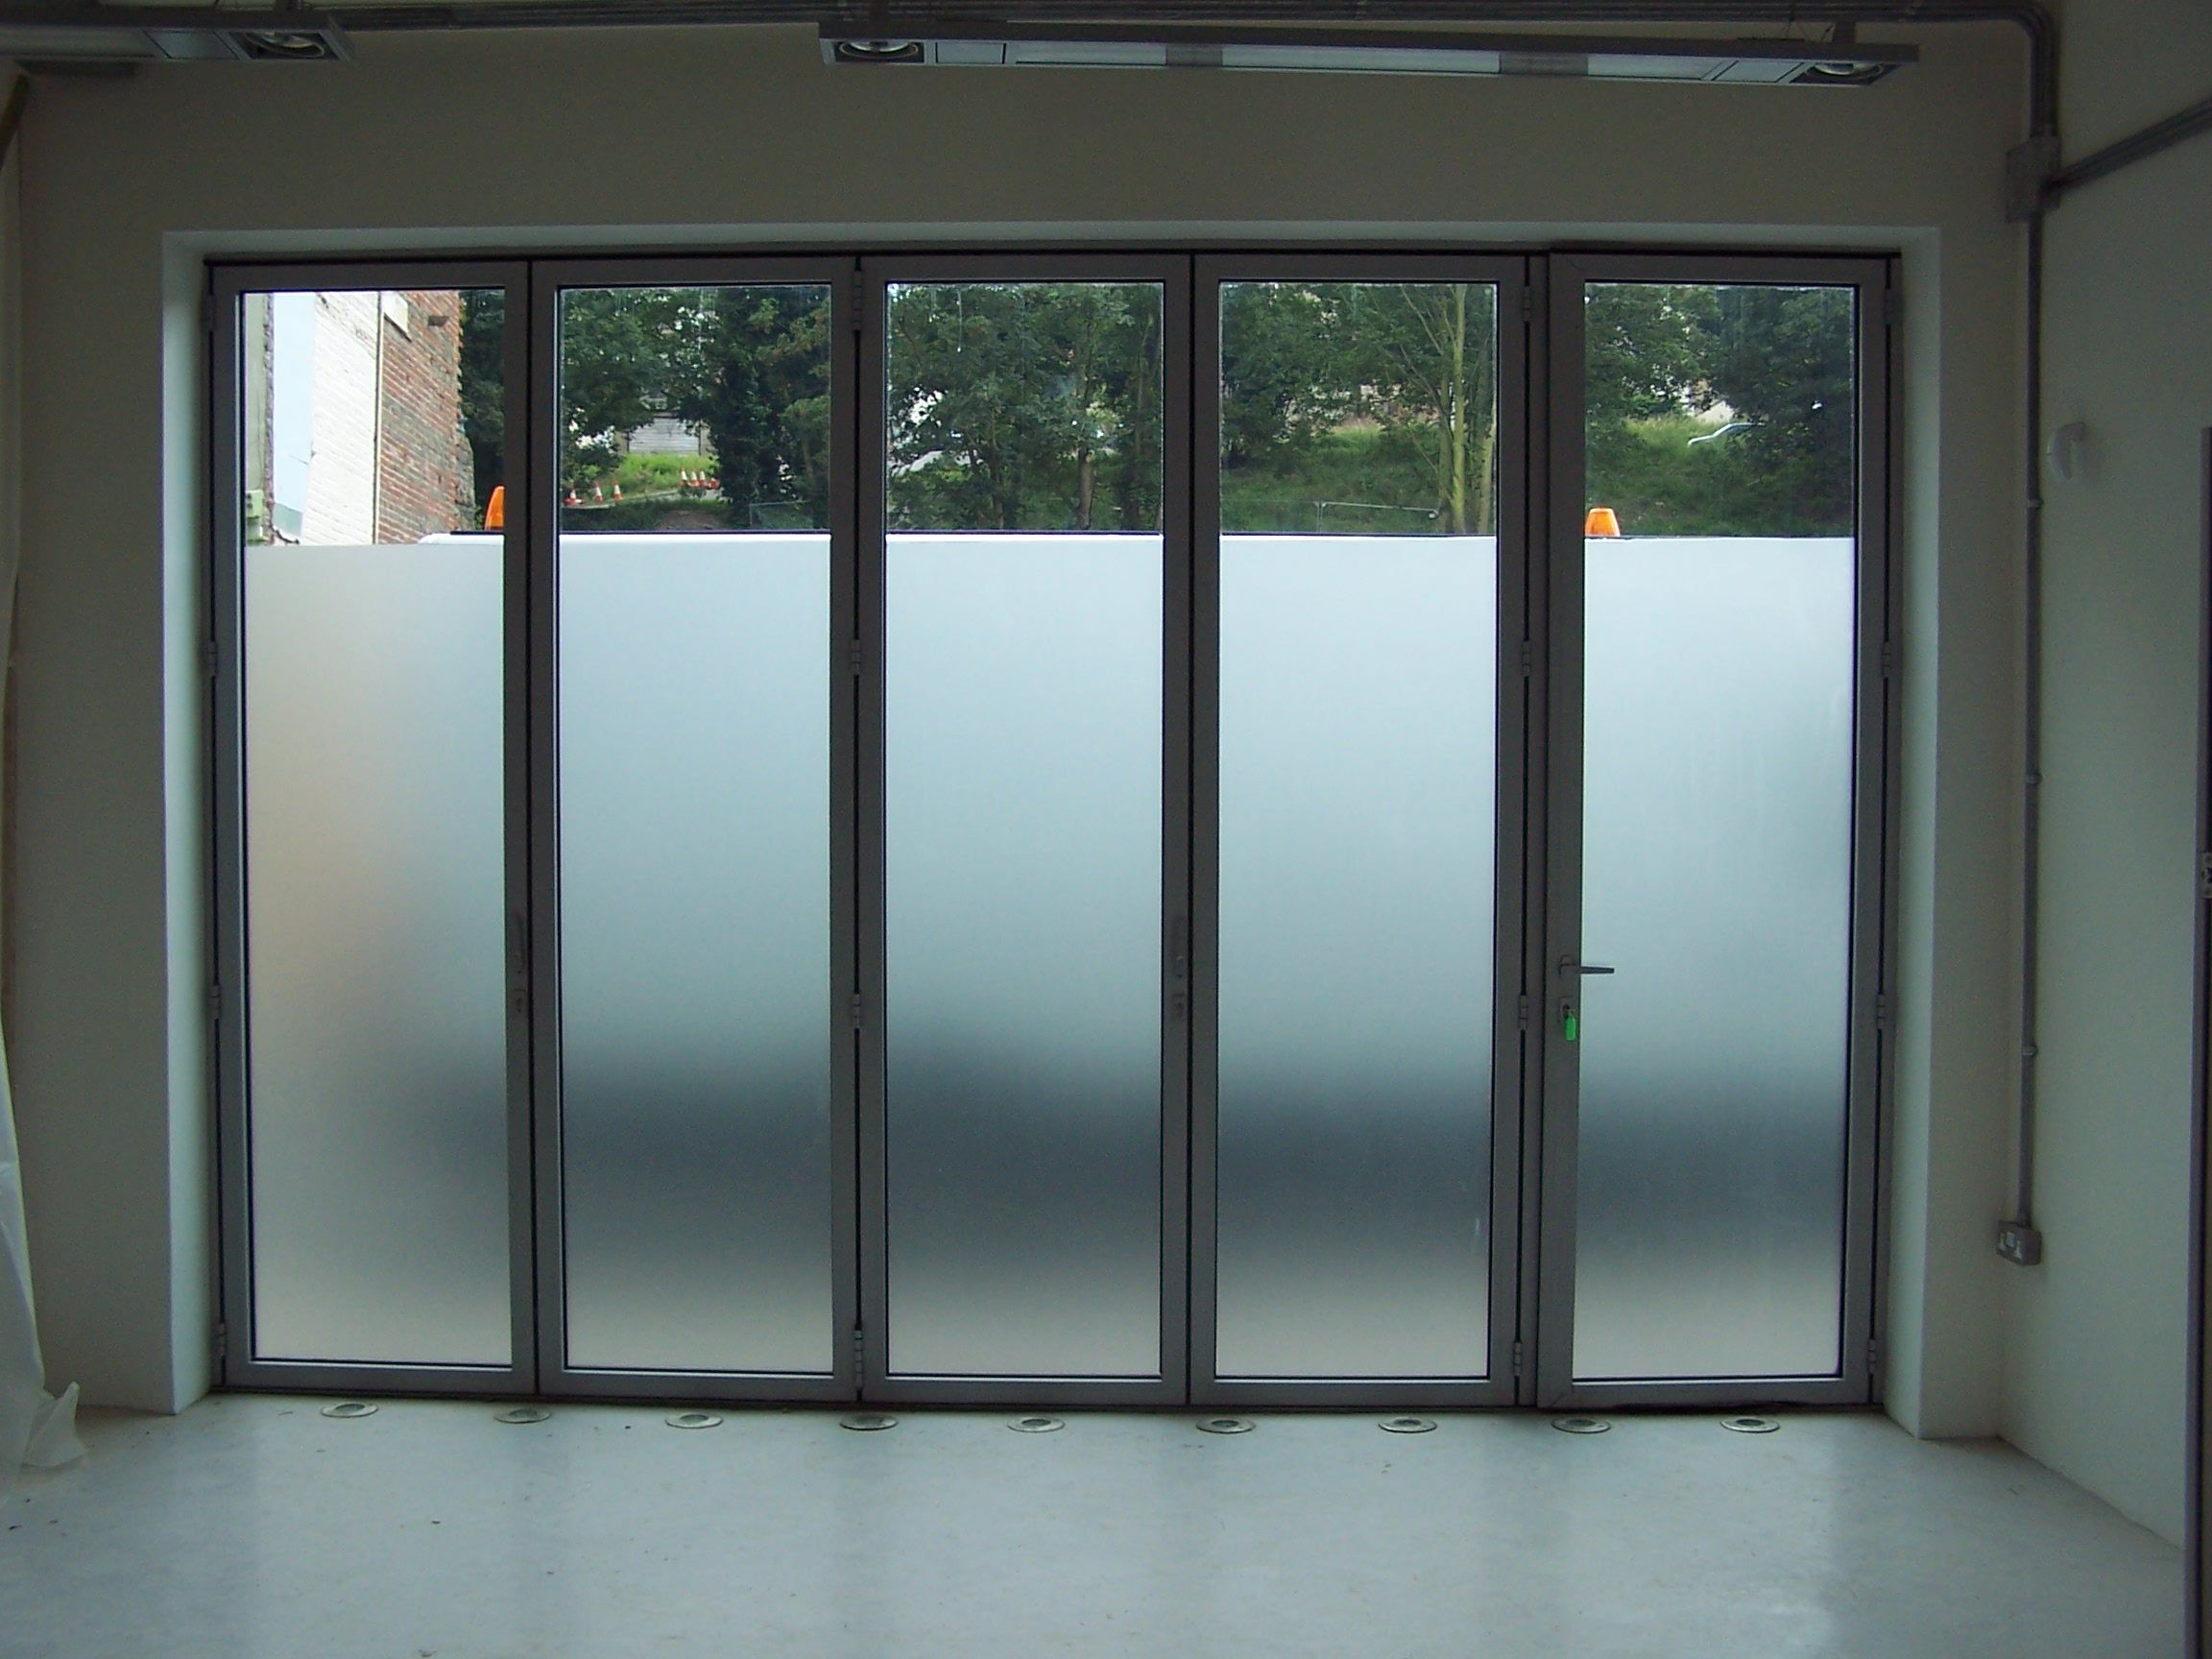 Frosted Glass Film And Frosted Glass Film Des Selfieword Com